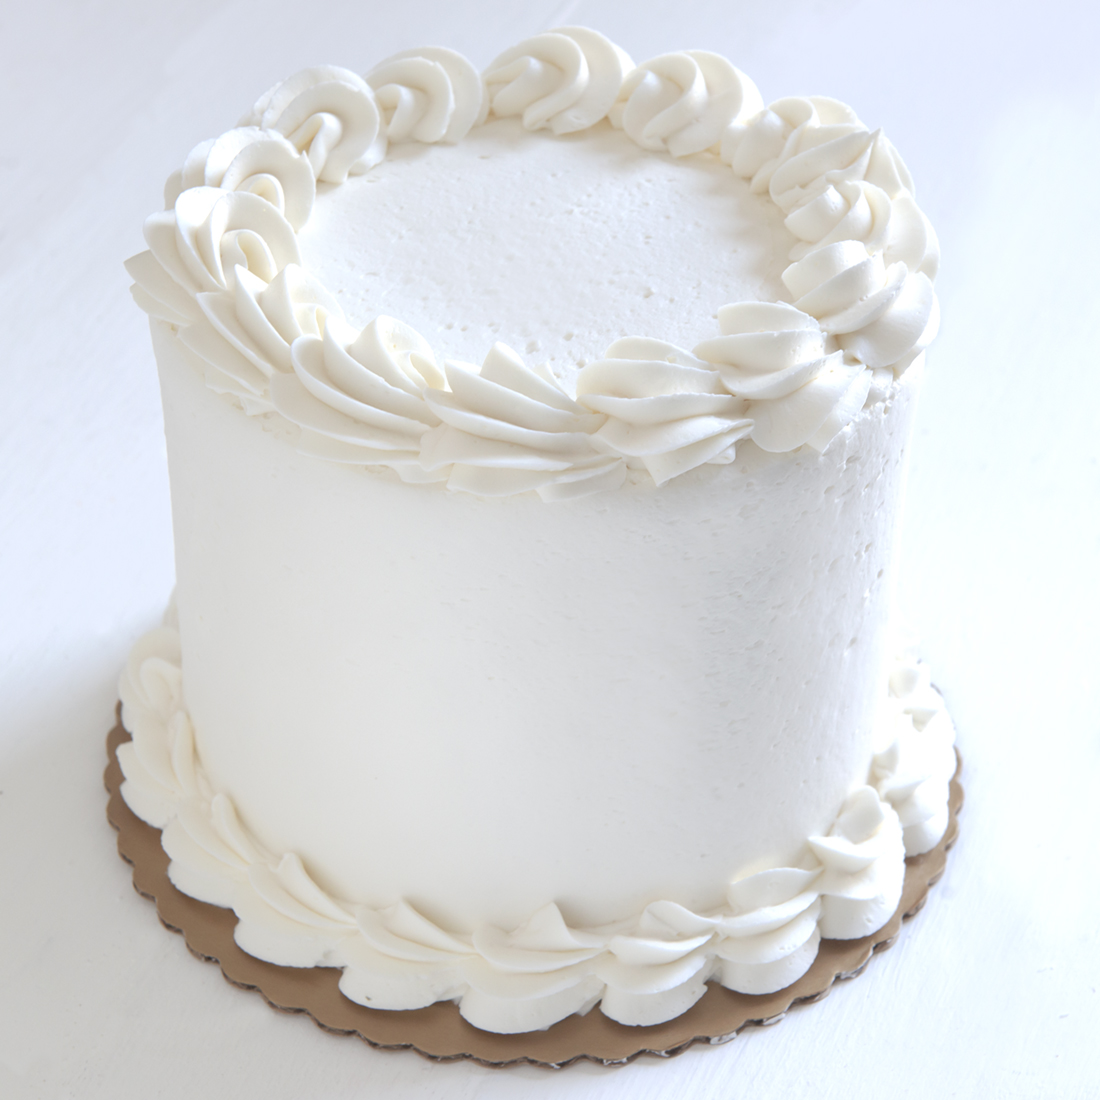 Lemon Meringue - Vanilla cake filled with lemon filling, frosted with vanilla buttercream6